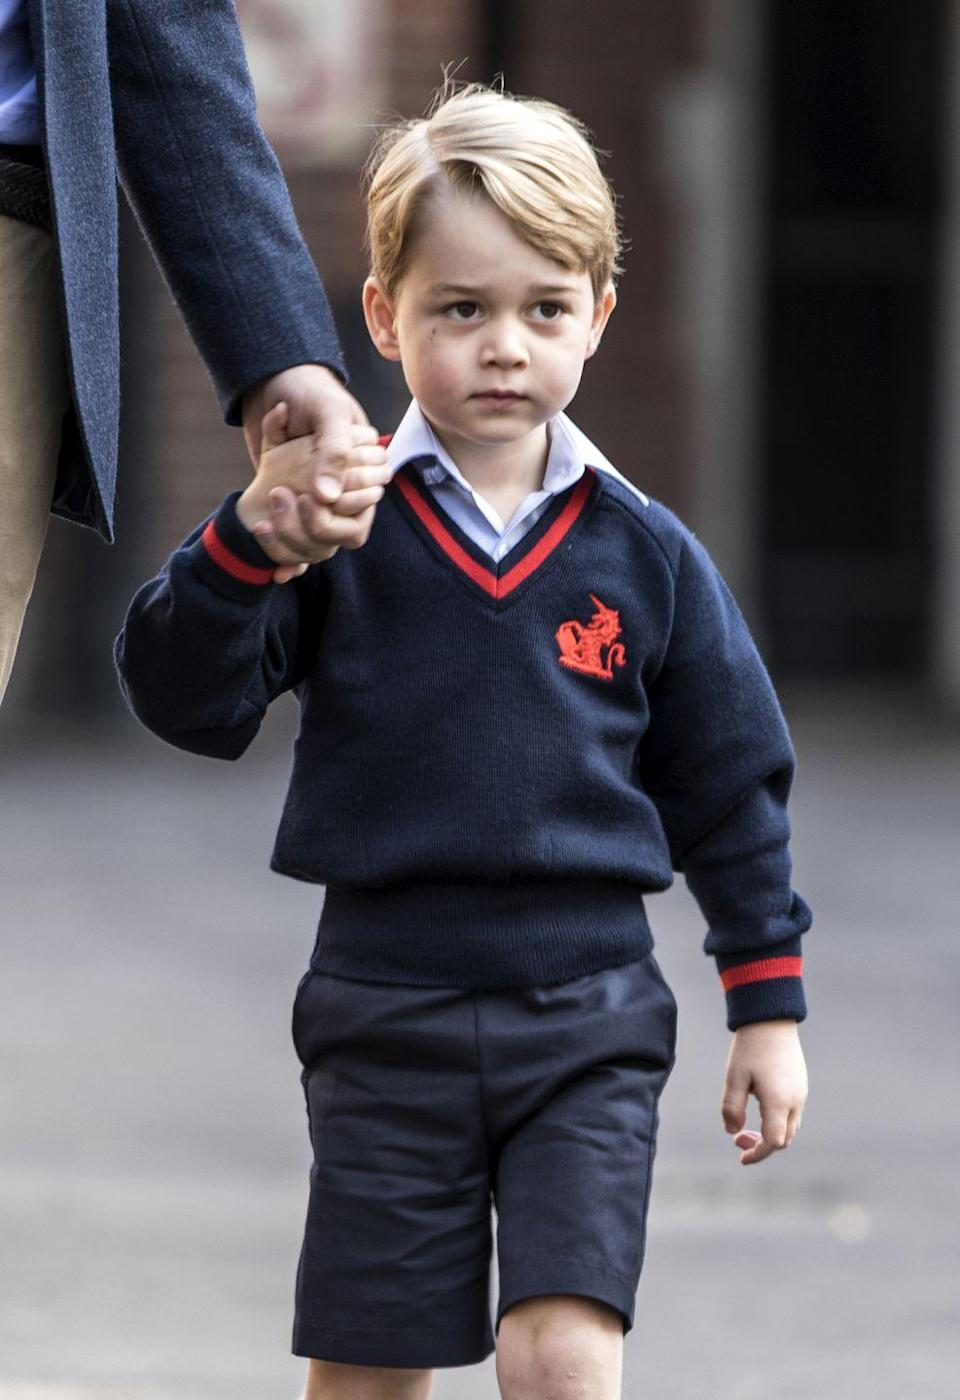 "<p><strong>Branch of the Family Tree:</strong> Son of Prince William; grandson of Prince Charles; great-grandson of Queen Elizabeth II</p><p><strong>More:</strong> <a href=""https://www.townandcountrymag.com/society/tradition/g10044961/prince-george-photos-news/"" rel=""nofollow noopener"" target=""_blank"" data-ylk=""slk:The Cutest Photos of Prince George"" class=""link rapid-noclick-resp"">The Cutest Photos of Prince George</a></p>"